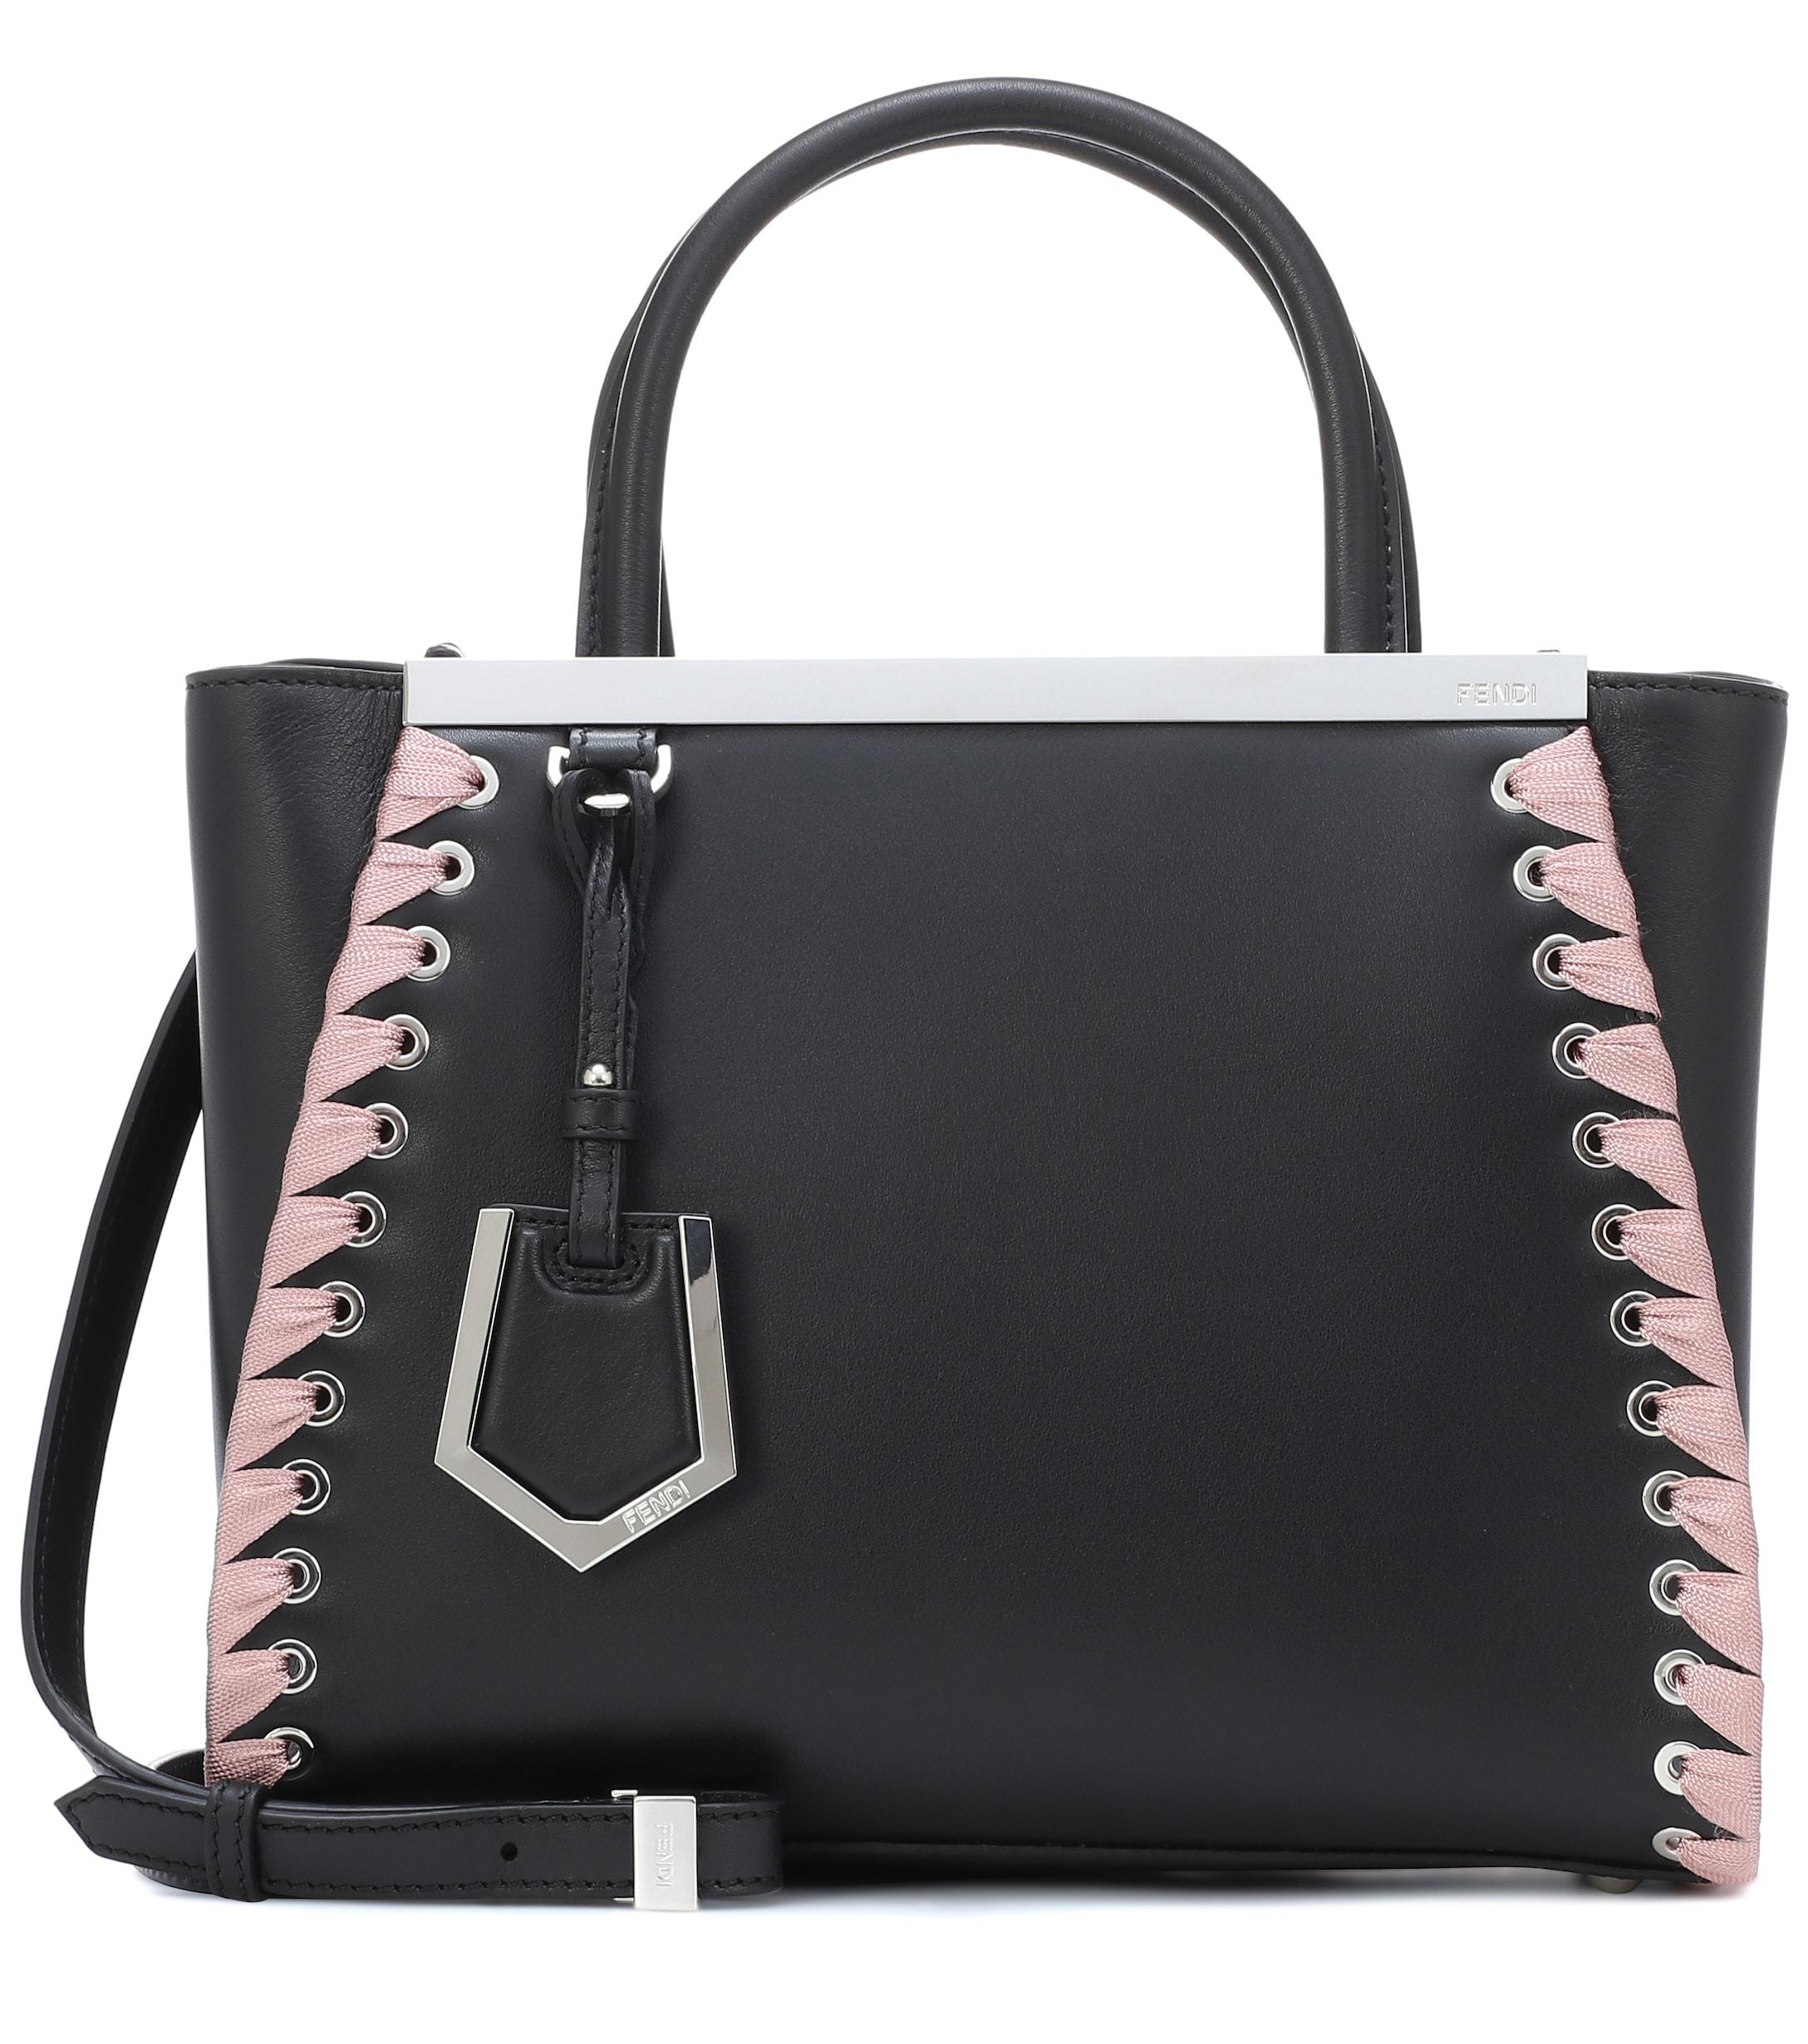 401b2634a071 Fendi - Black Petite 2jours Leather Tote - Lyst. View fullscreen